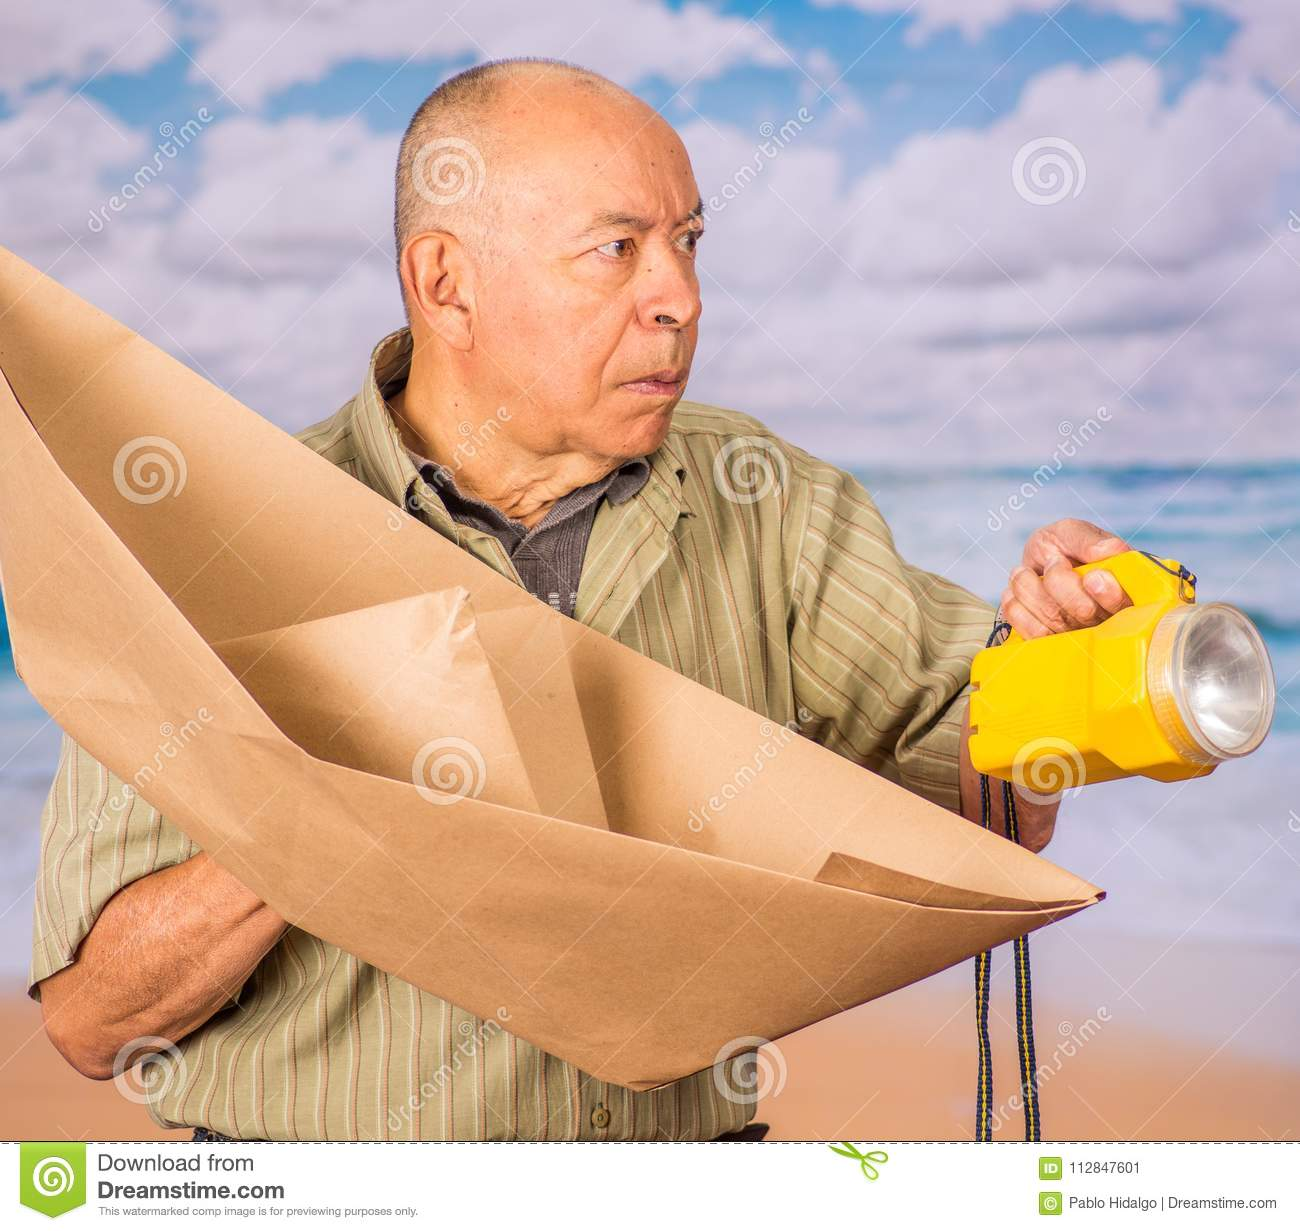 Close up of mature man with brown paper origami boat and yellow lantern, concept for aspirations, leadership, strategy